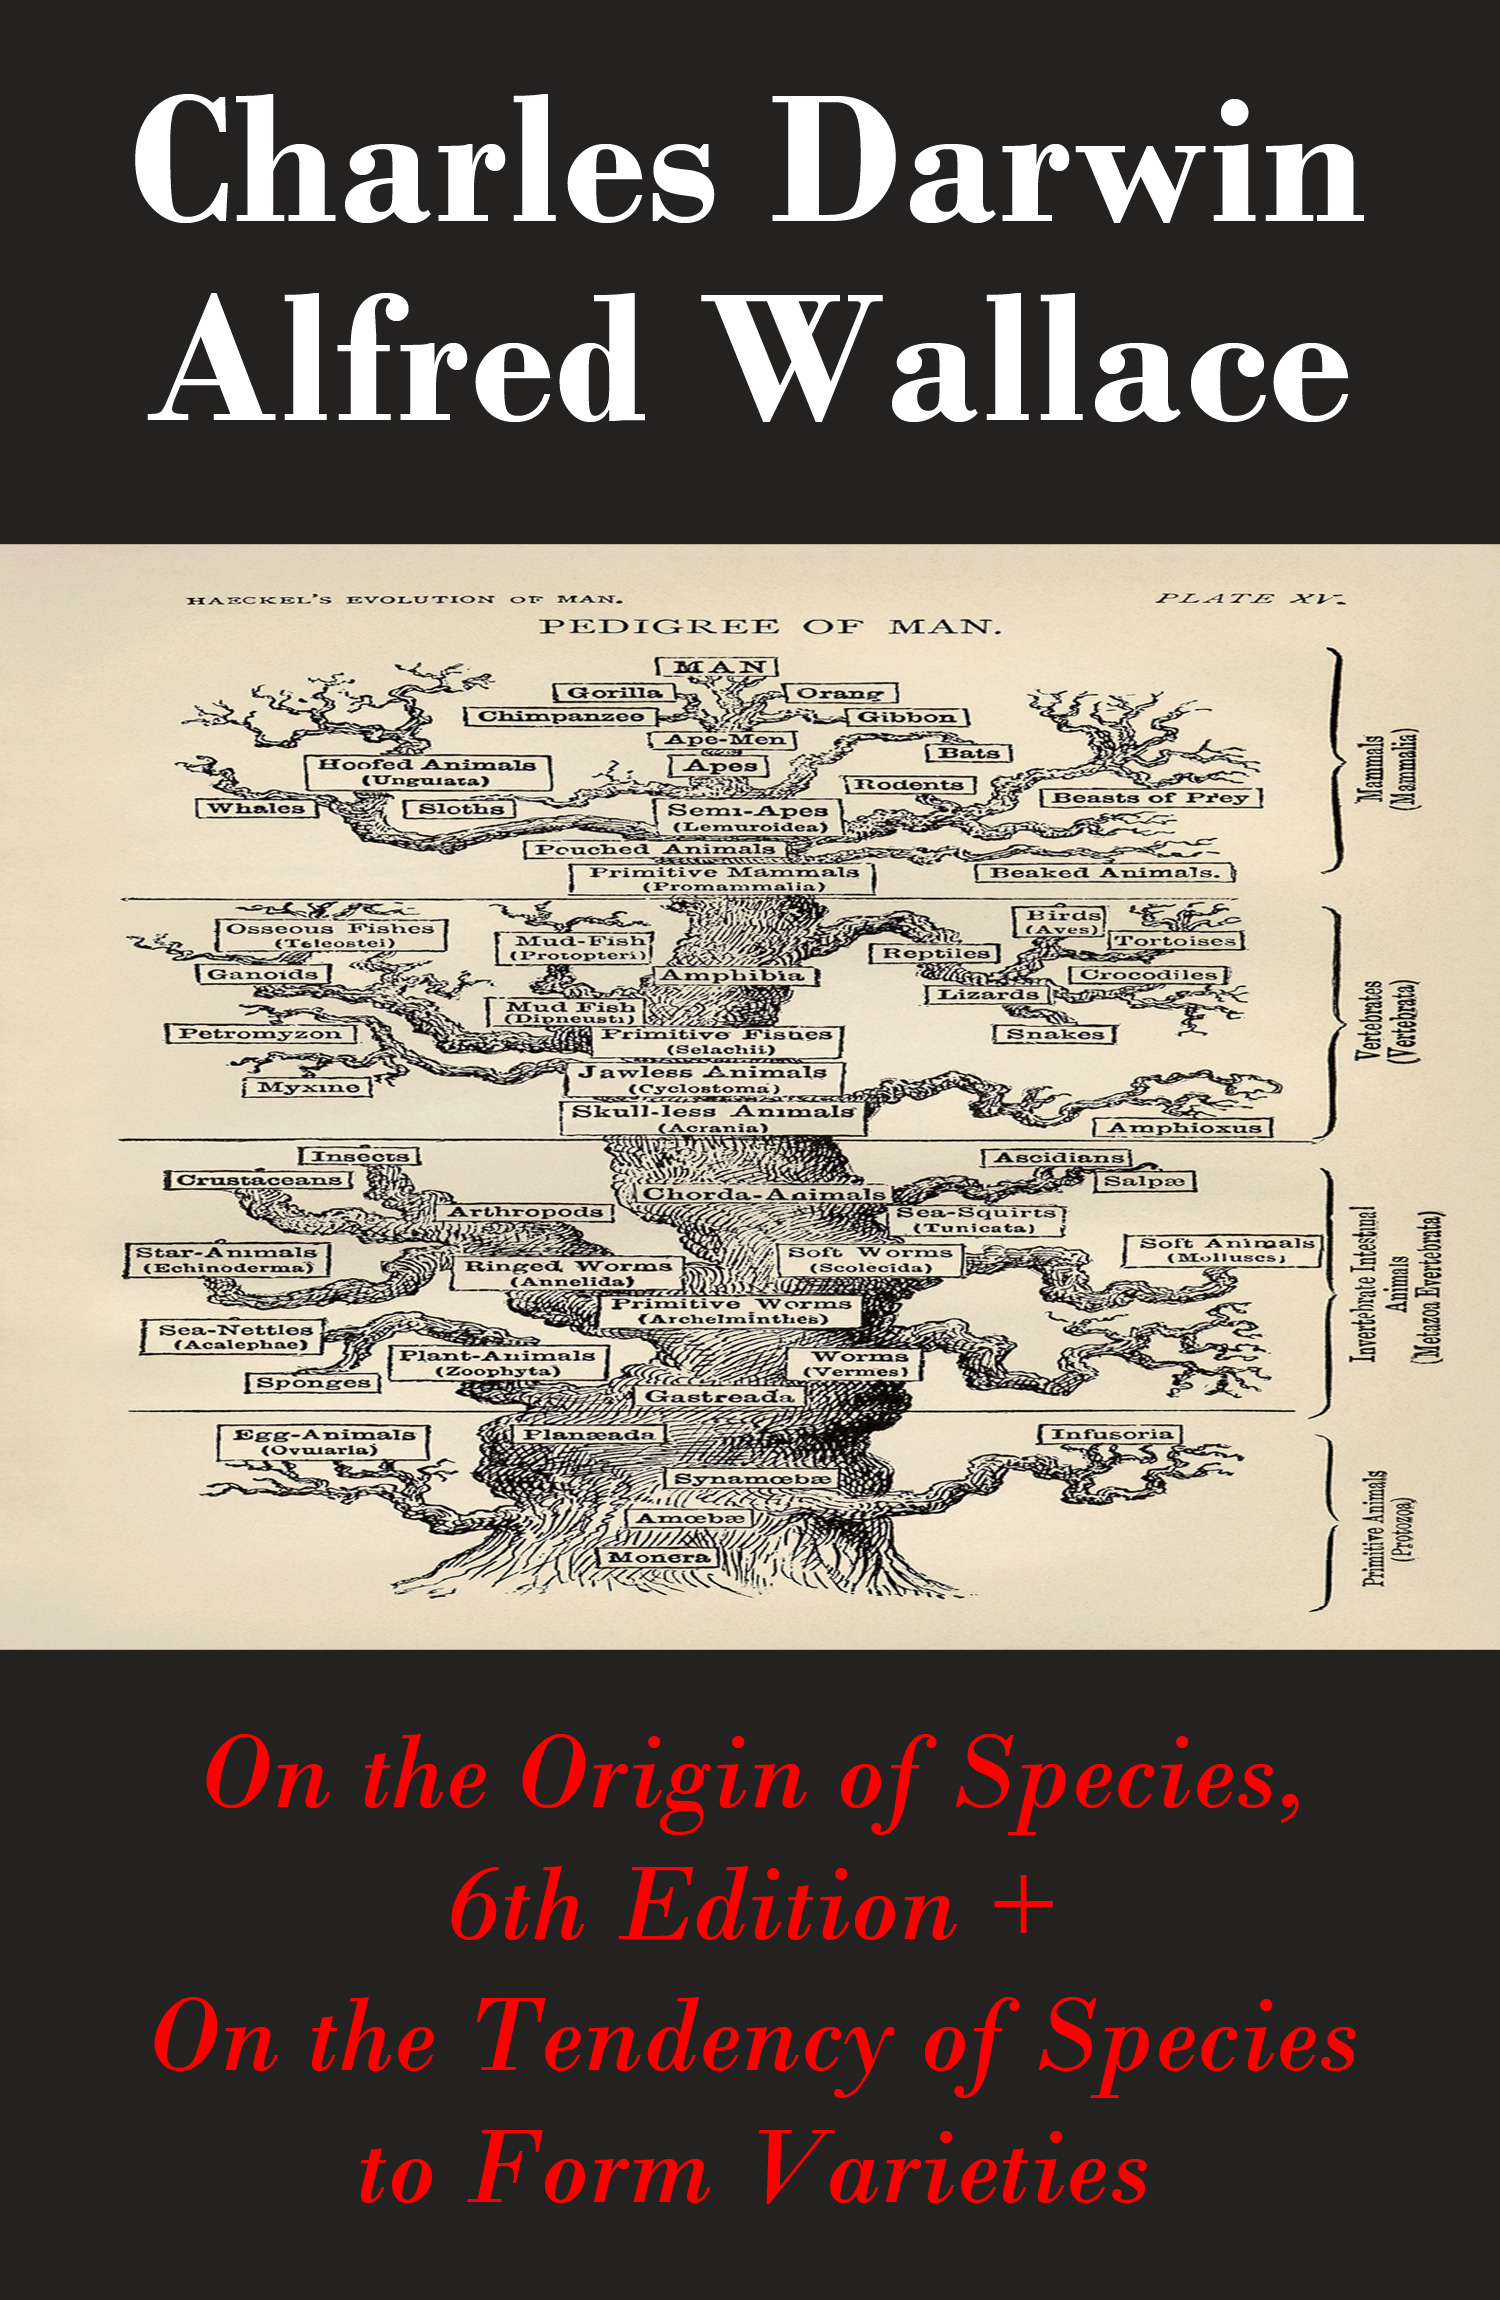 On the Origin of Species, 6th Edition + On the Tendency of Species to Form Varieties (The Original Scientific Text leading to